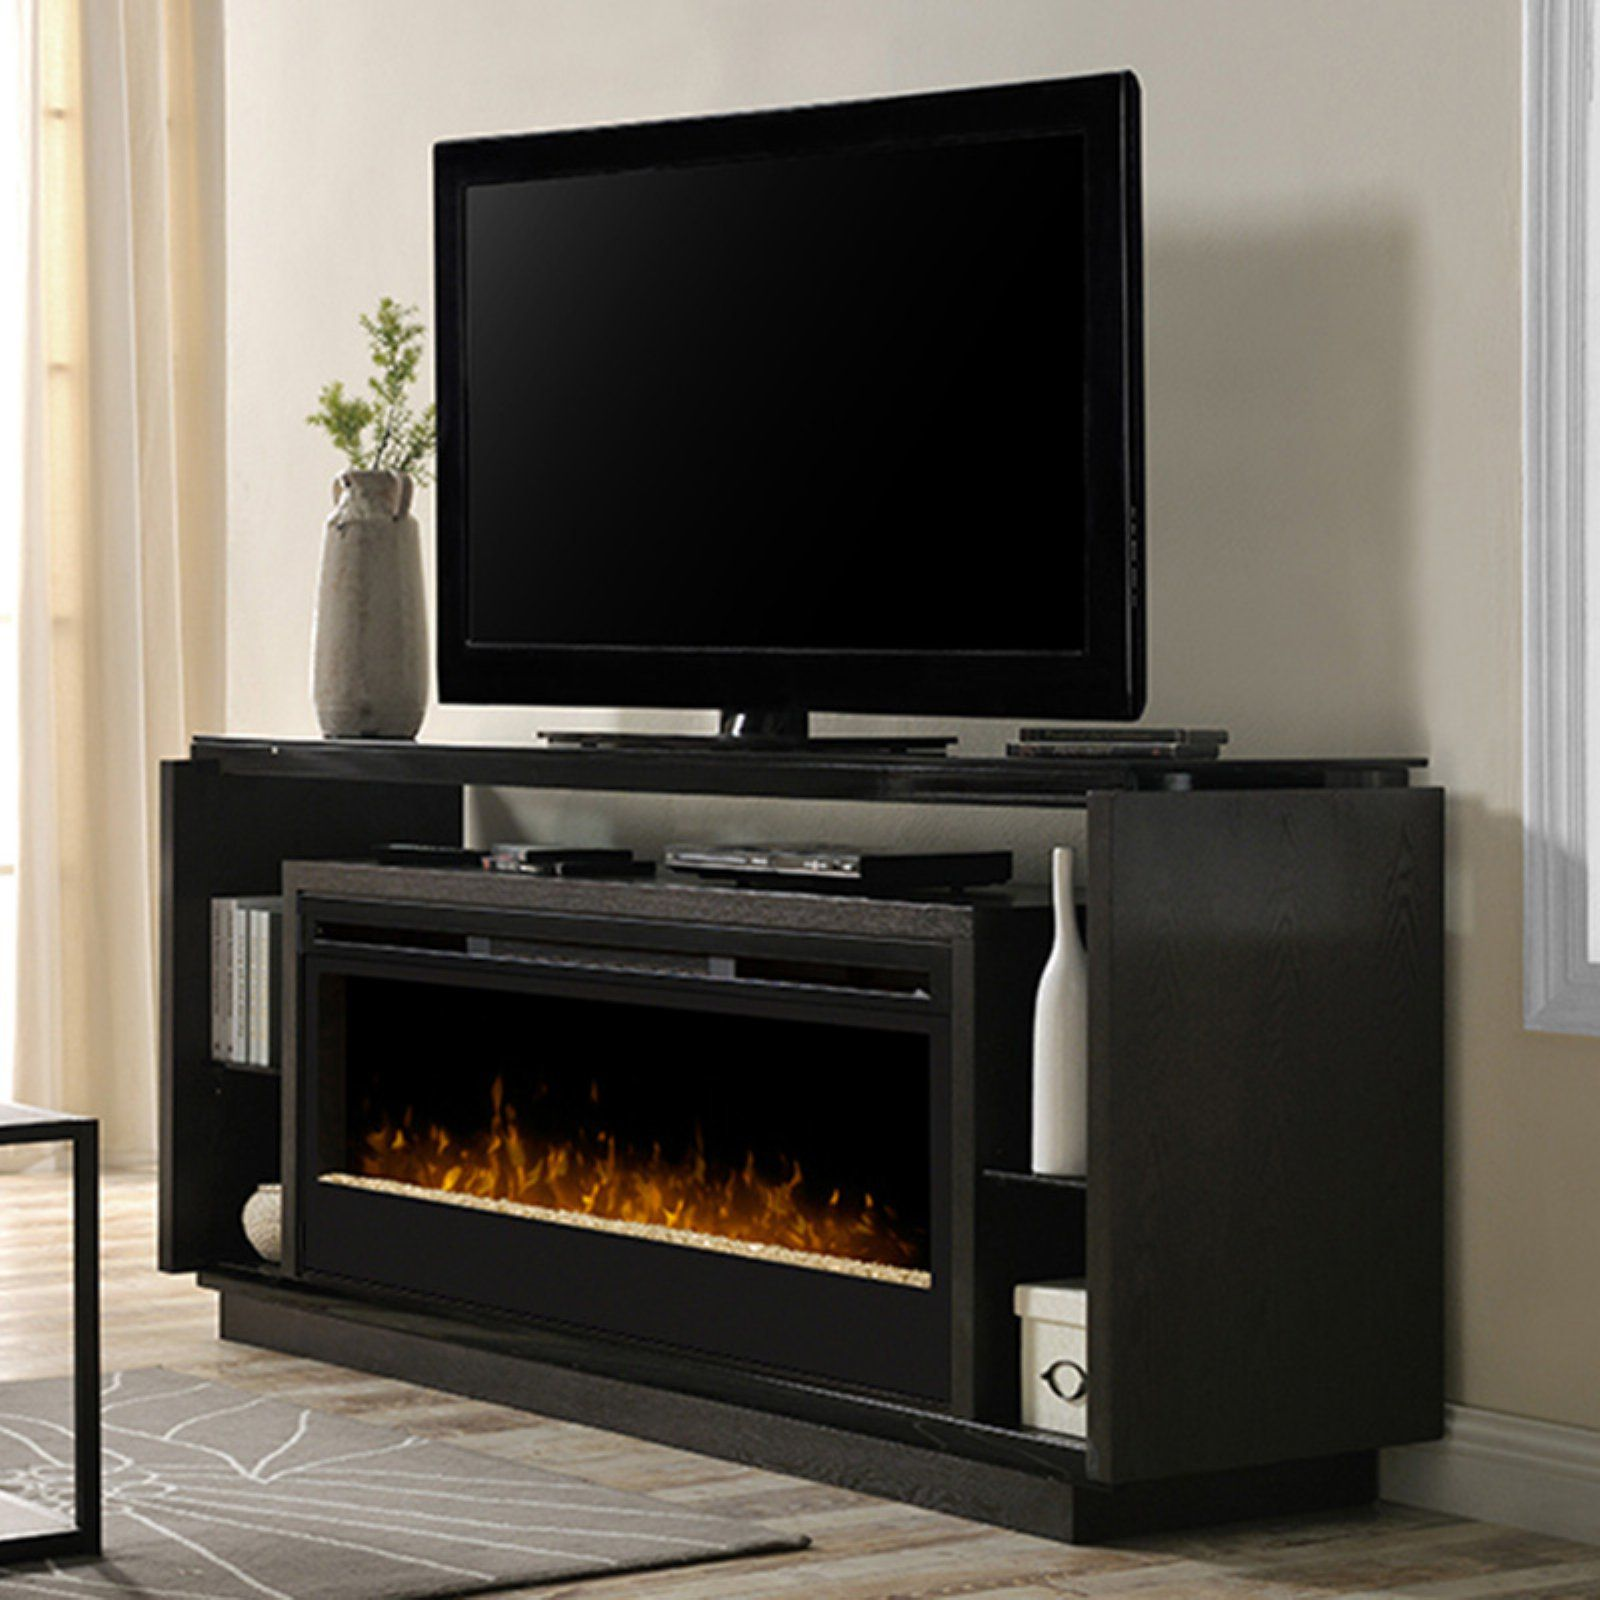 Dimplex David Media Console With Electric Fireplace With Images